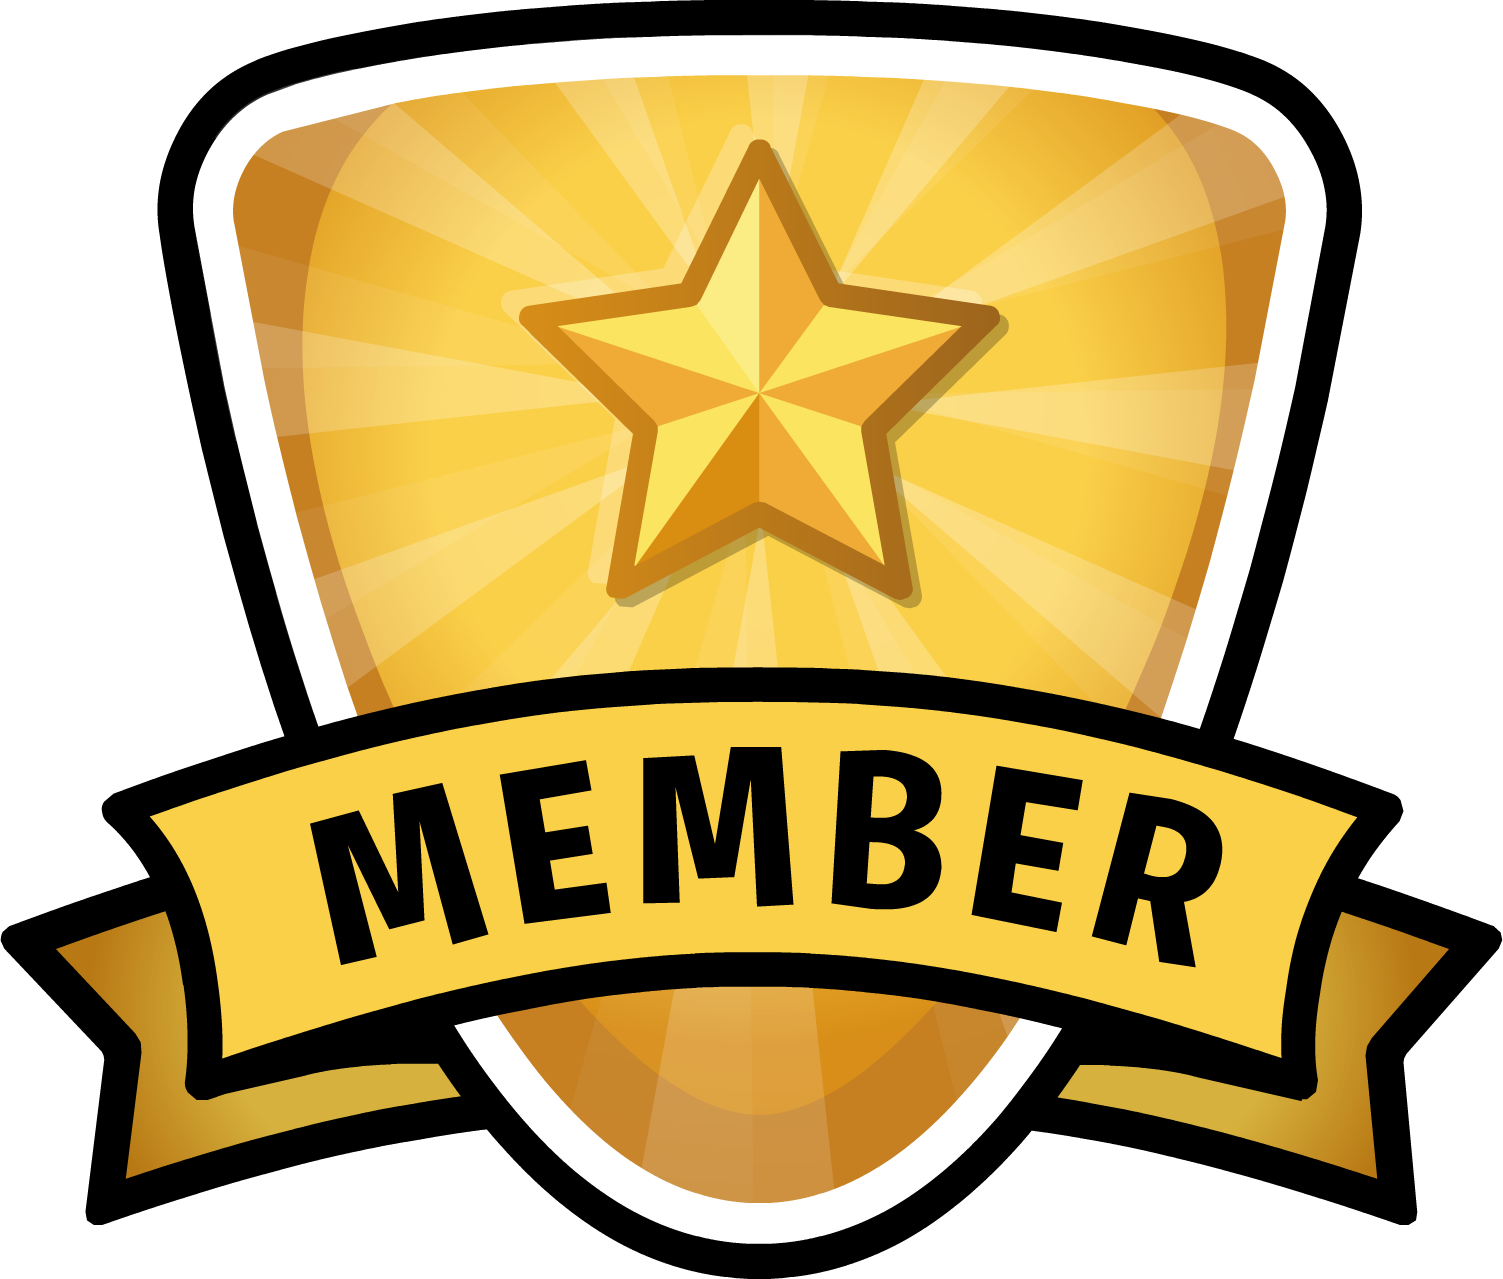 Image membership badge png. Stamp clipart collector